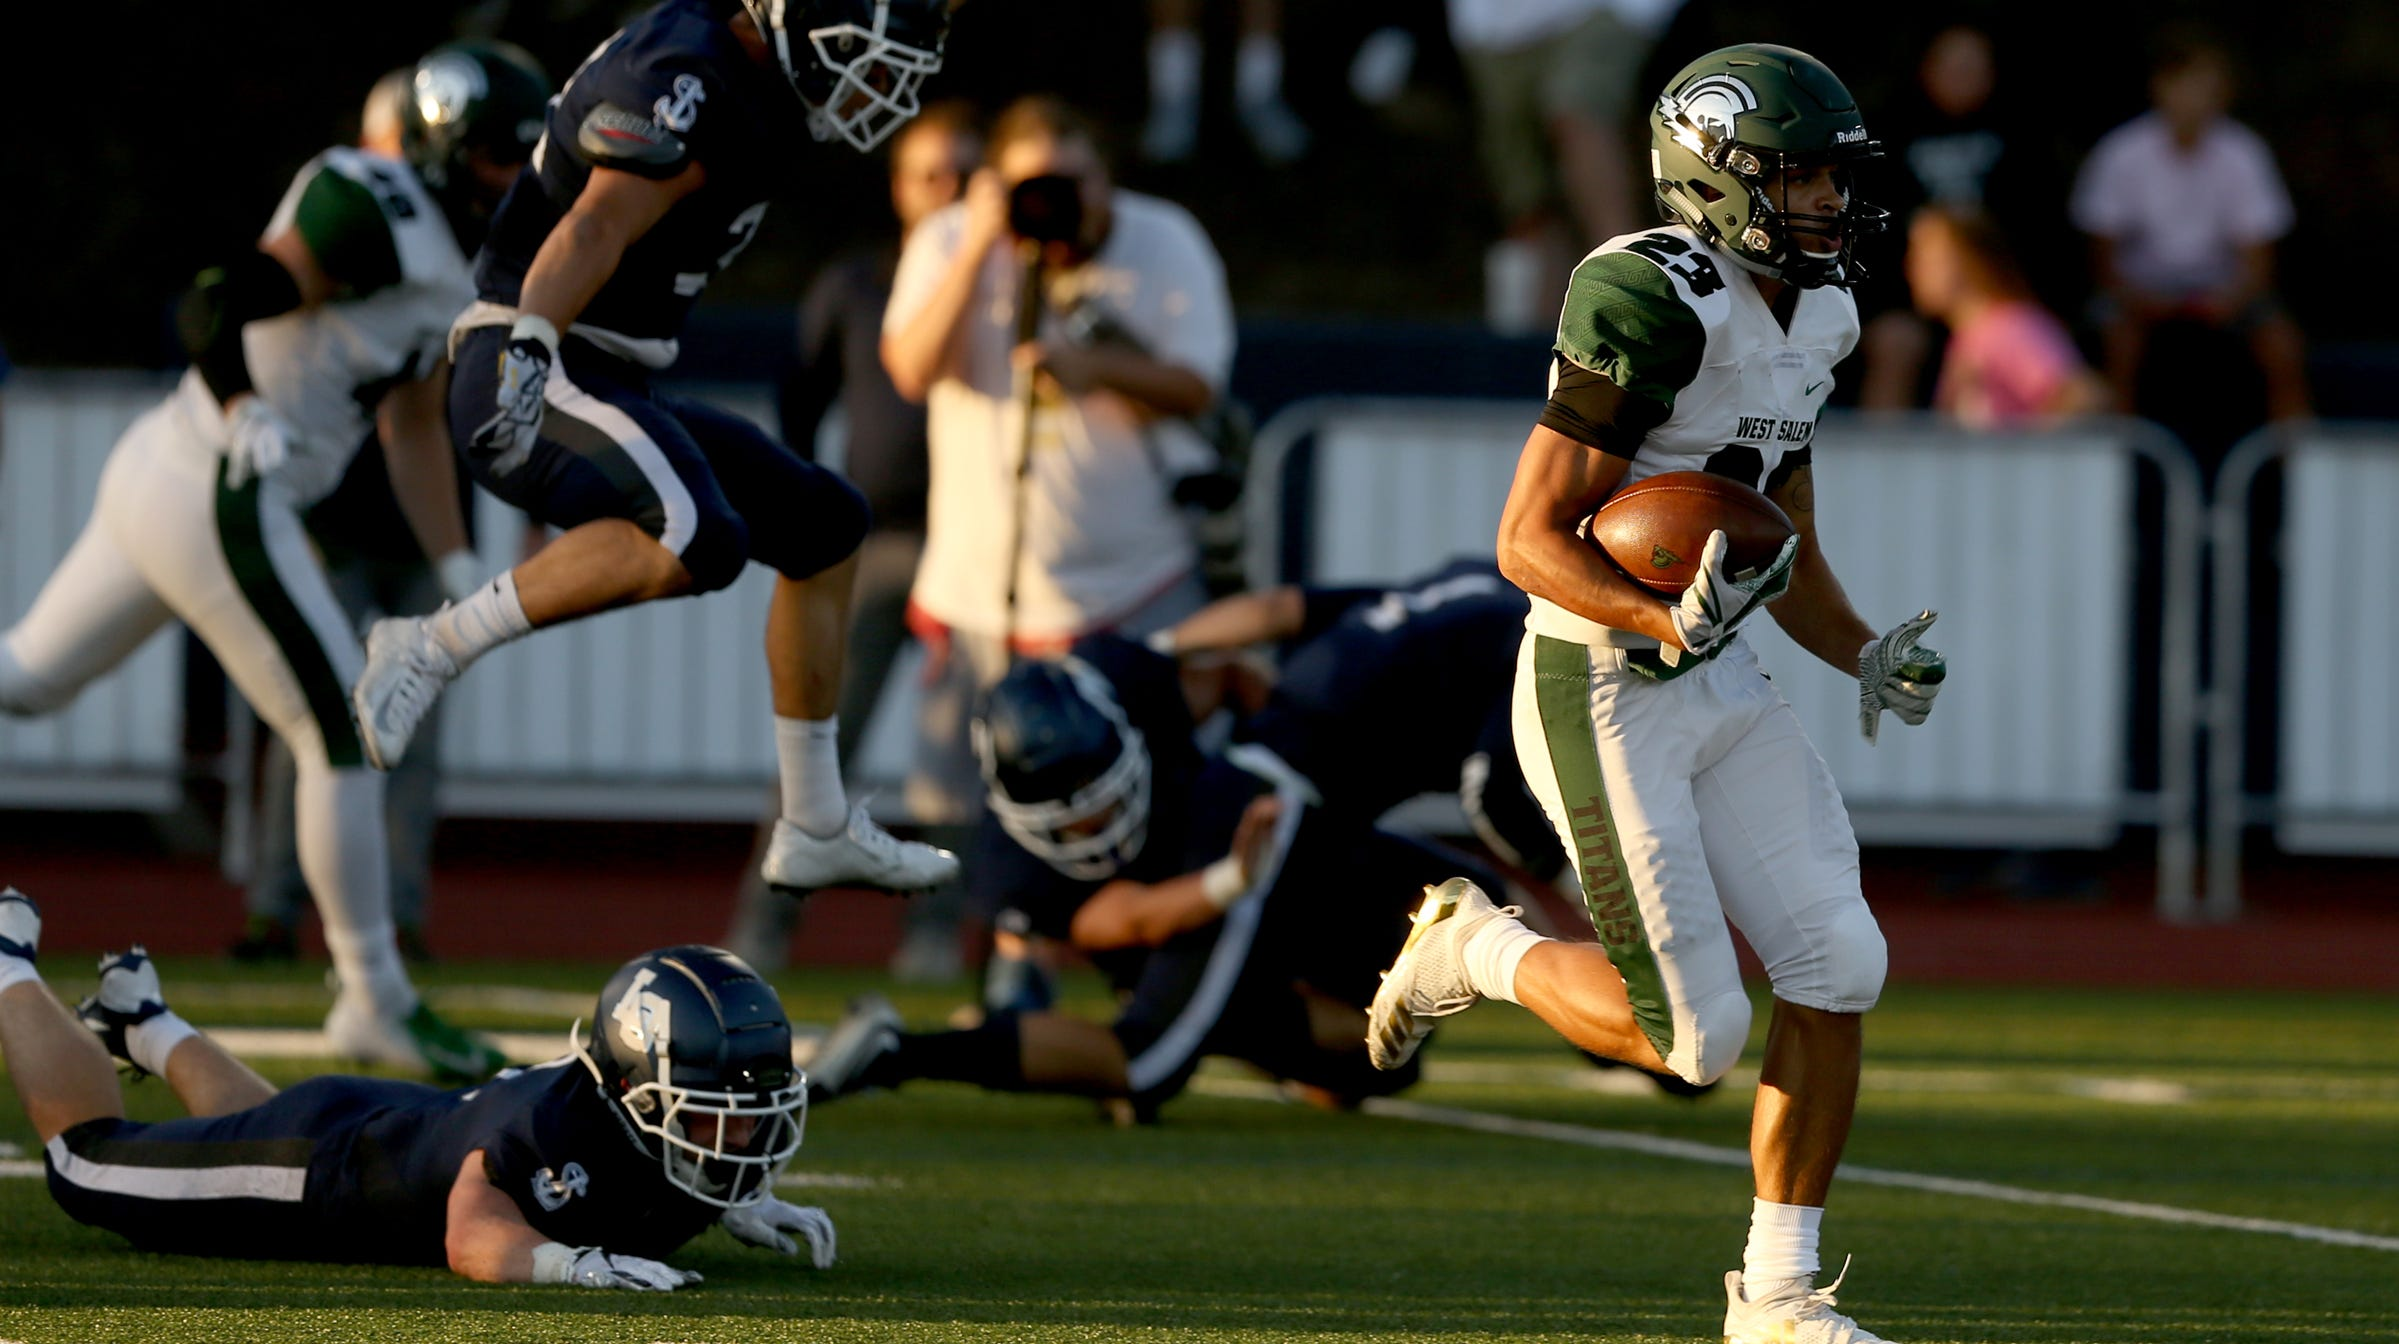 West Salem's Anthony Gould (23) rushes in the first half of the West Salem vs. Lake Oswego football game at Lake Oswego High School on Friday, Aug. 31, 2018.